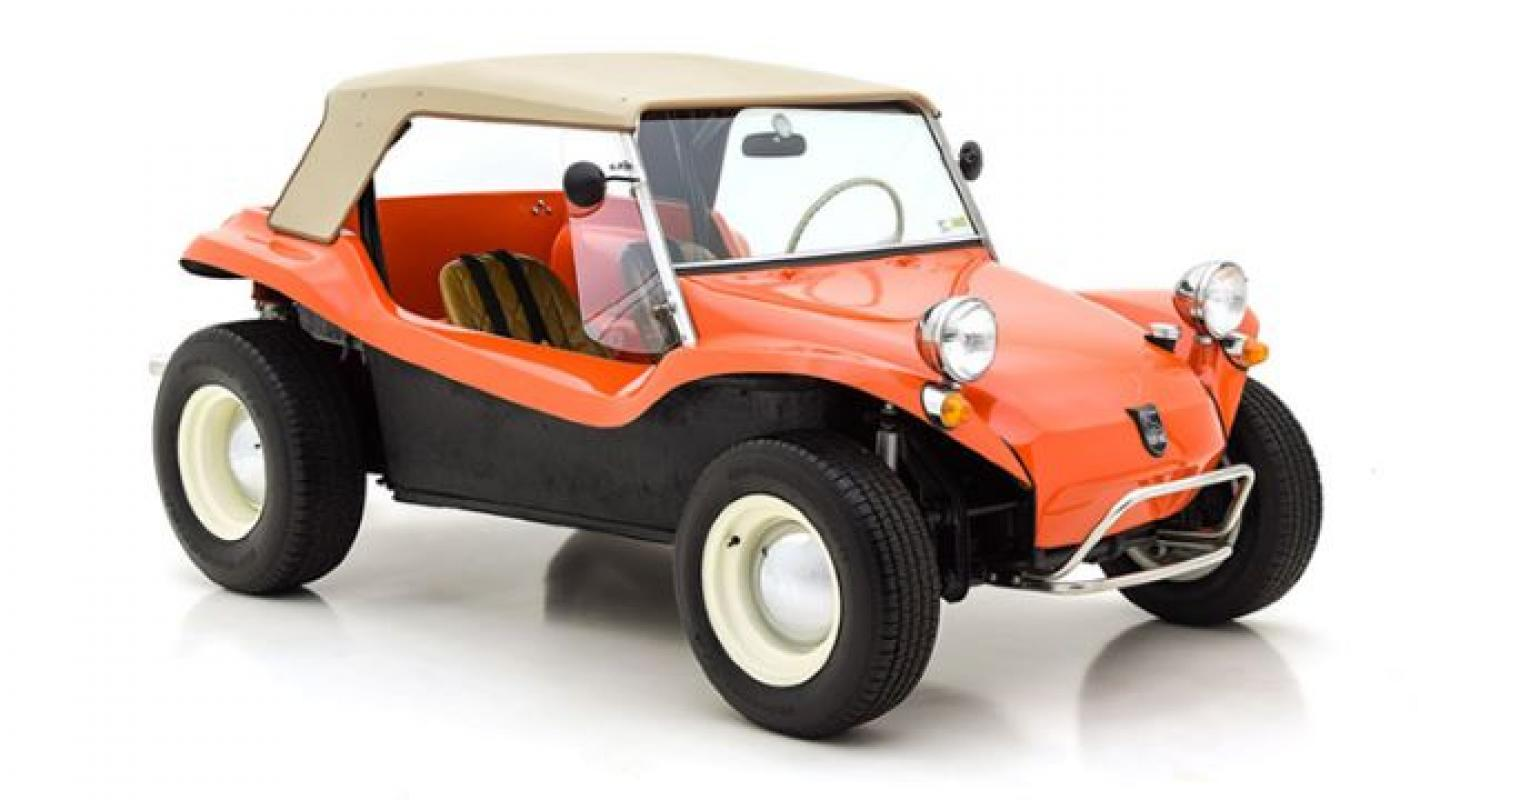 Volkswagen To Electrify Classic Dune Buggy Wardsauto